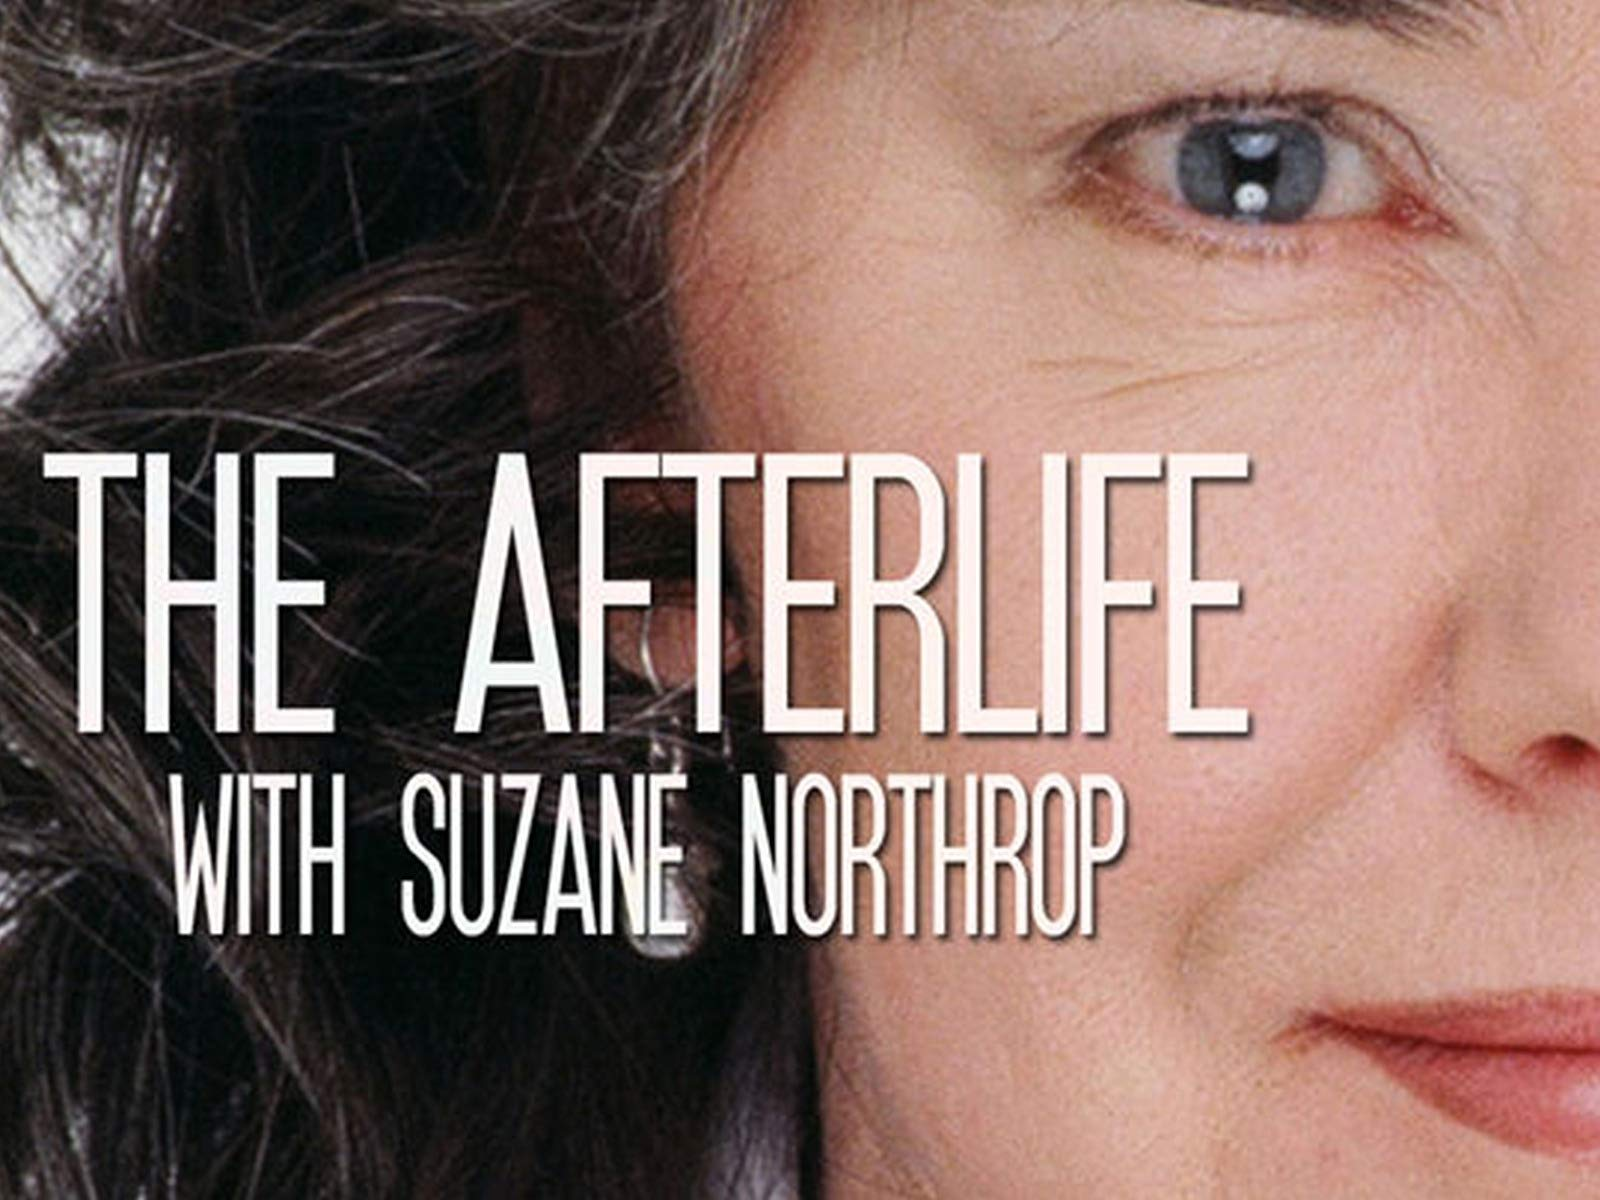 The Afterlife with Suzane Northrop - Season 1